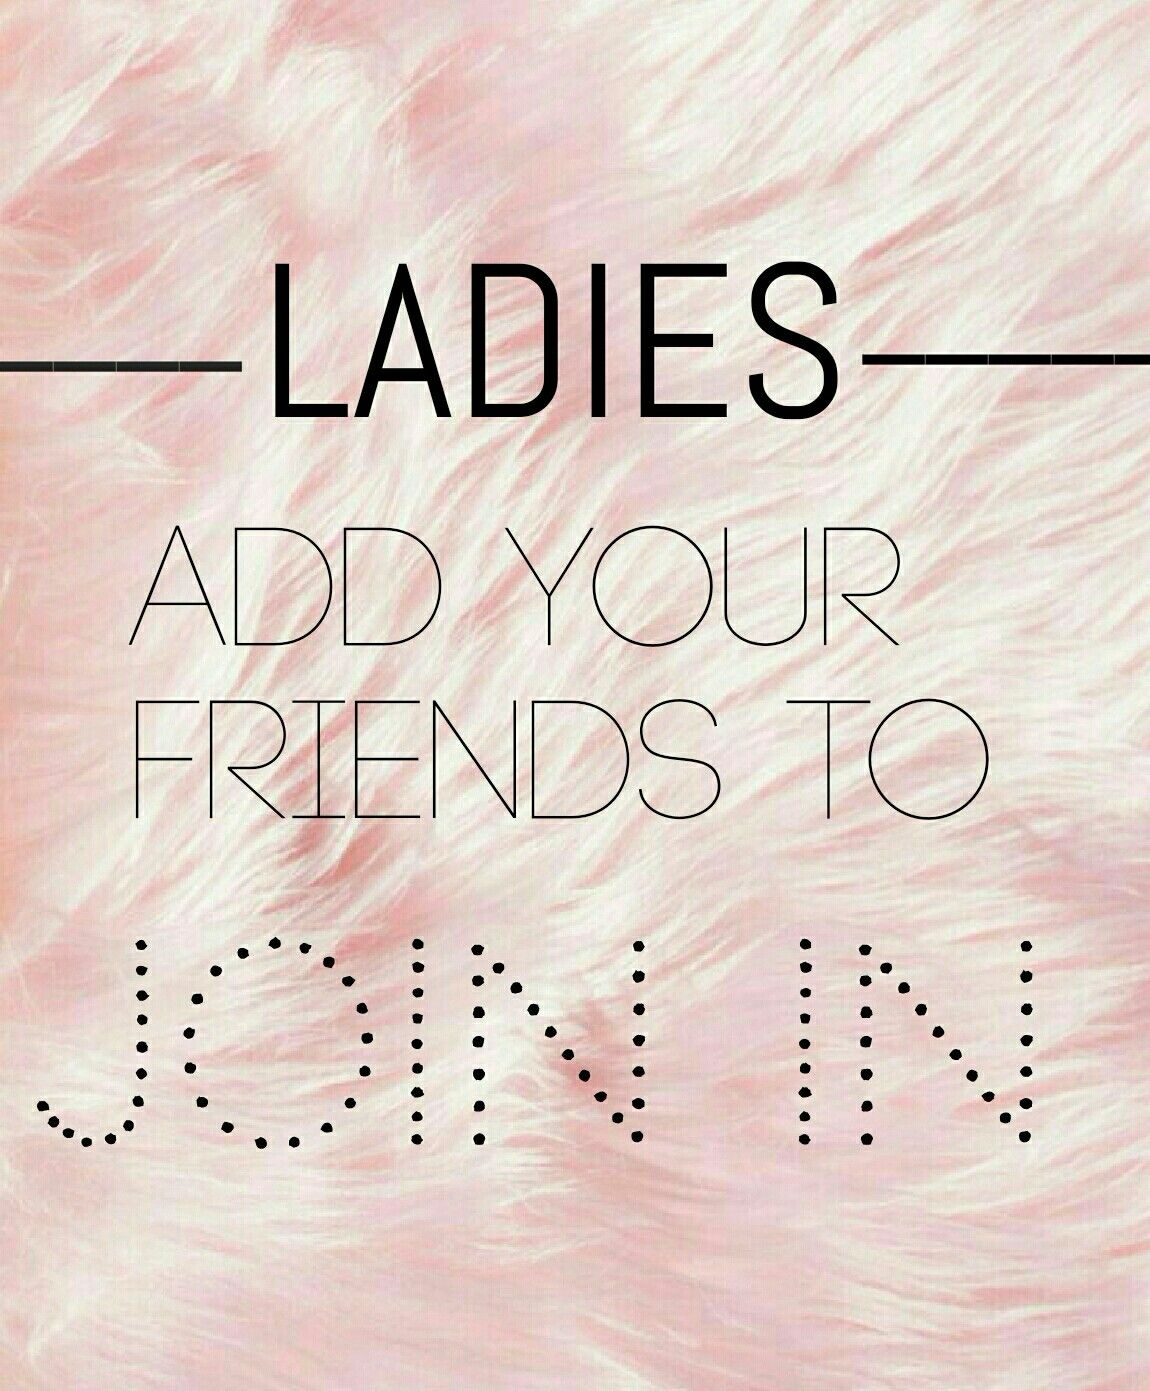 younique add friends to join | Avon Products | Pinterest | Selfmade